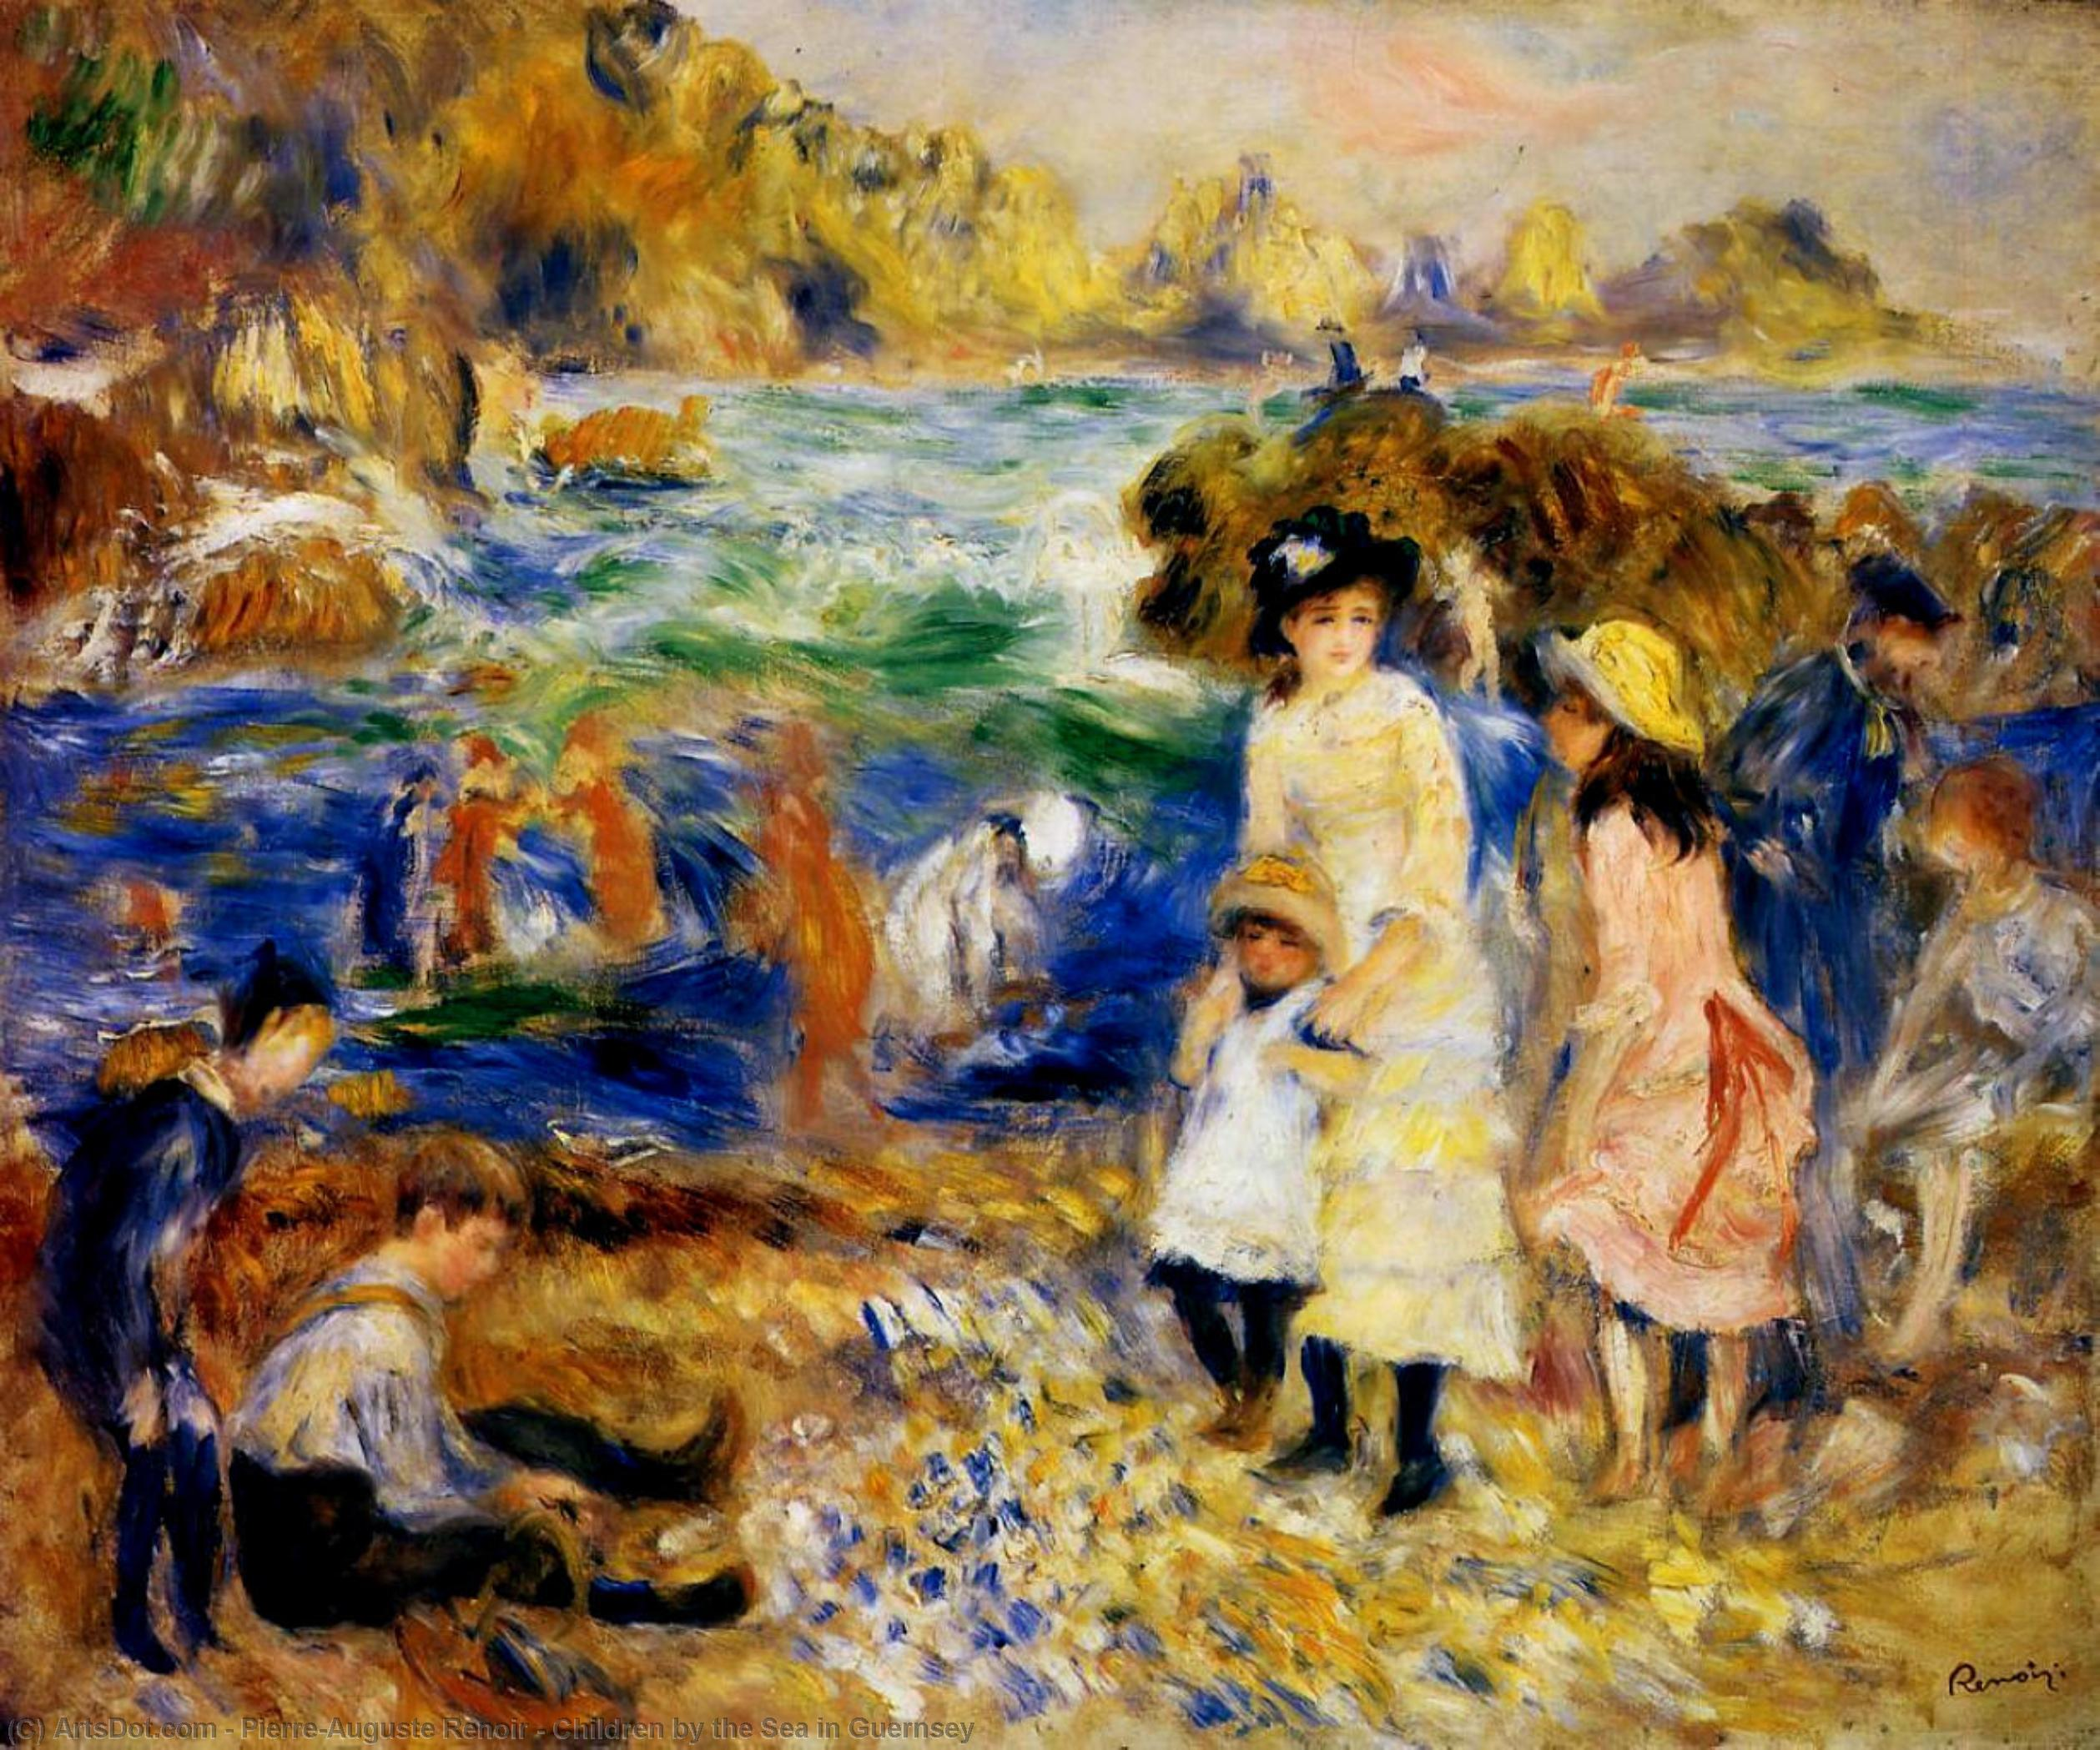 Wikioo.org - The Encyclopedia of Fine Arts - Painting, Artwork by Pierre-Auguste Renoir - Children by the Sea in Guernsey